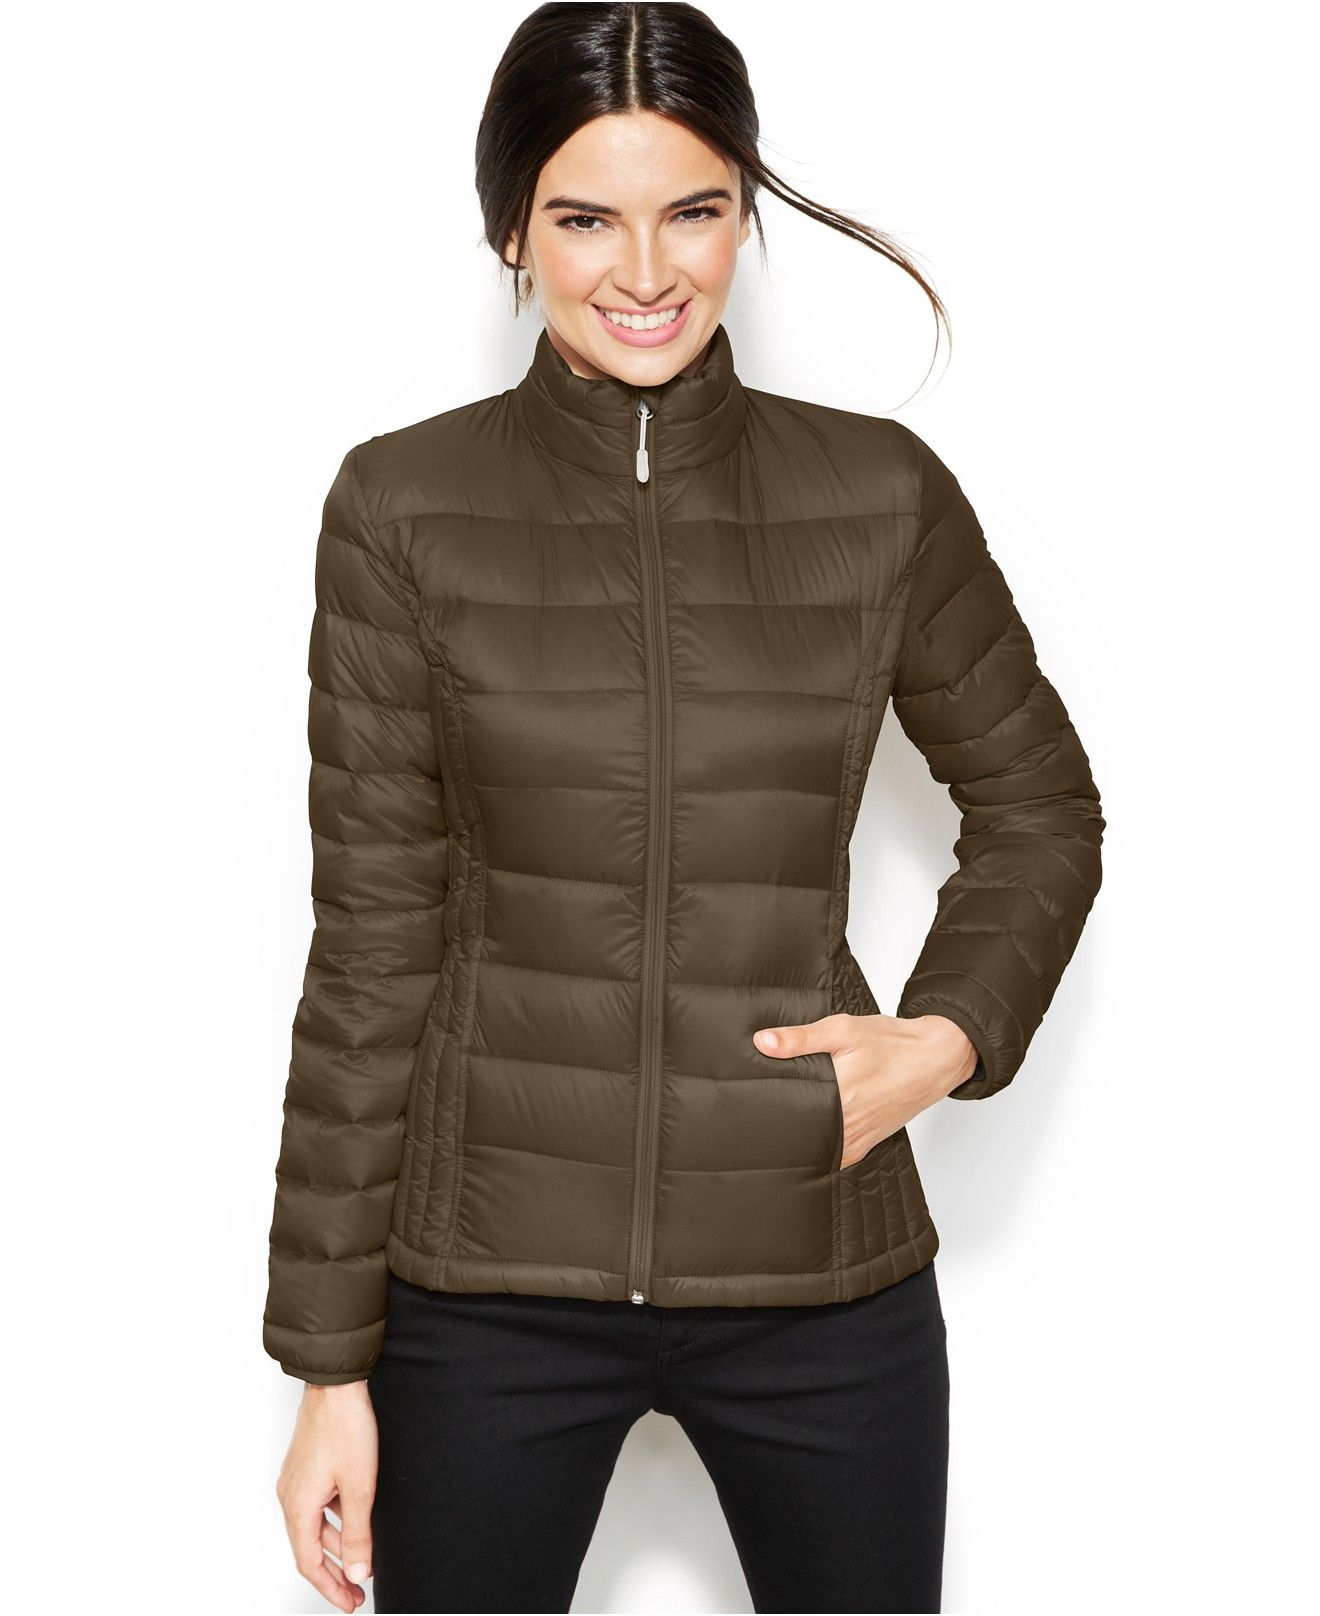 cc670d8a57296 32 Degrees Quilted Down Packable Puffer Coat - Coats - Women - Macy s